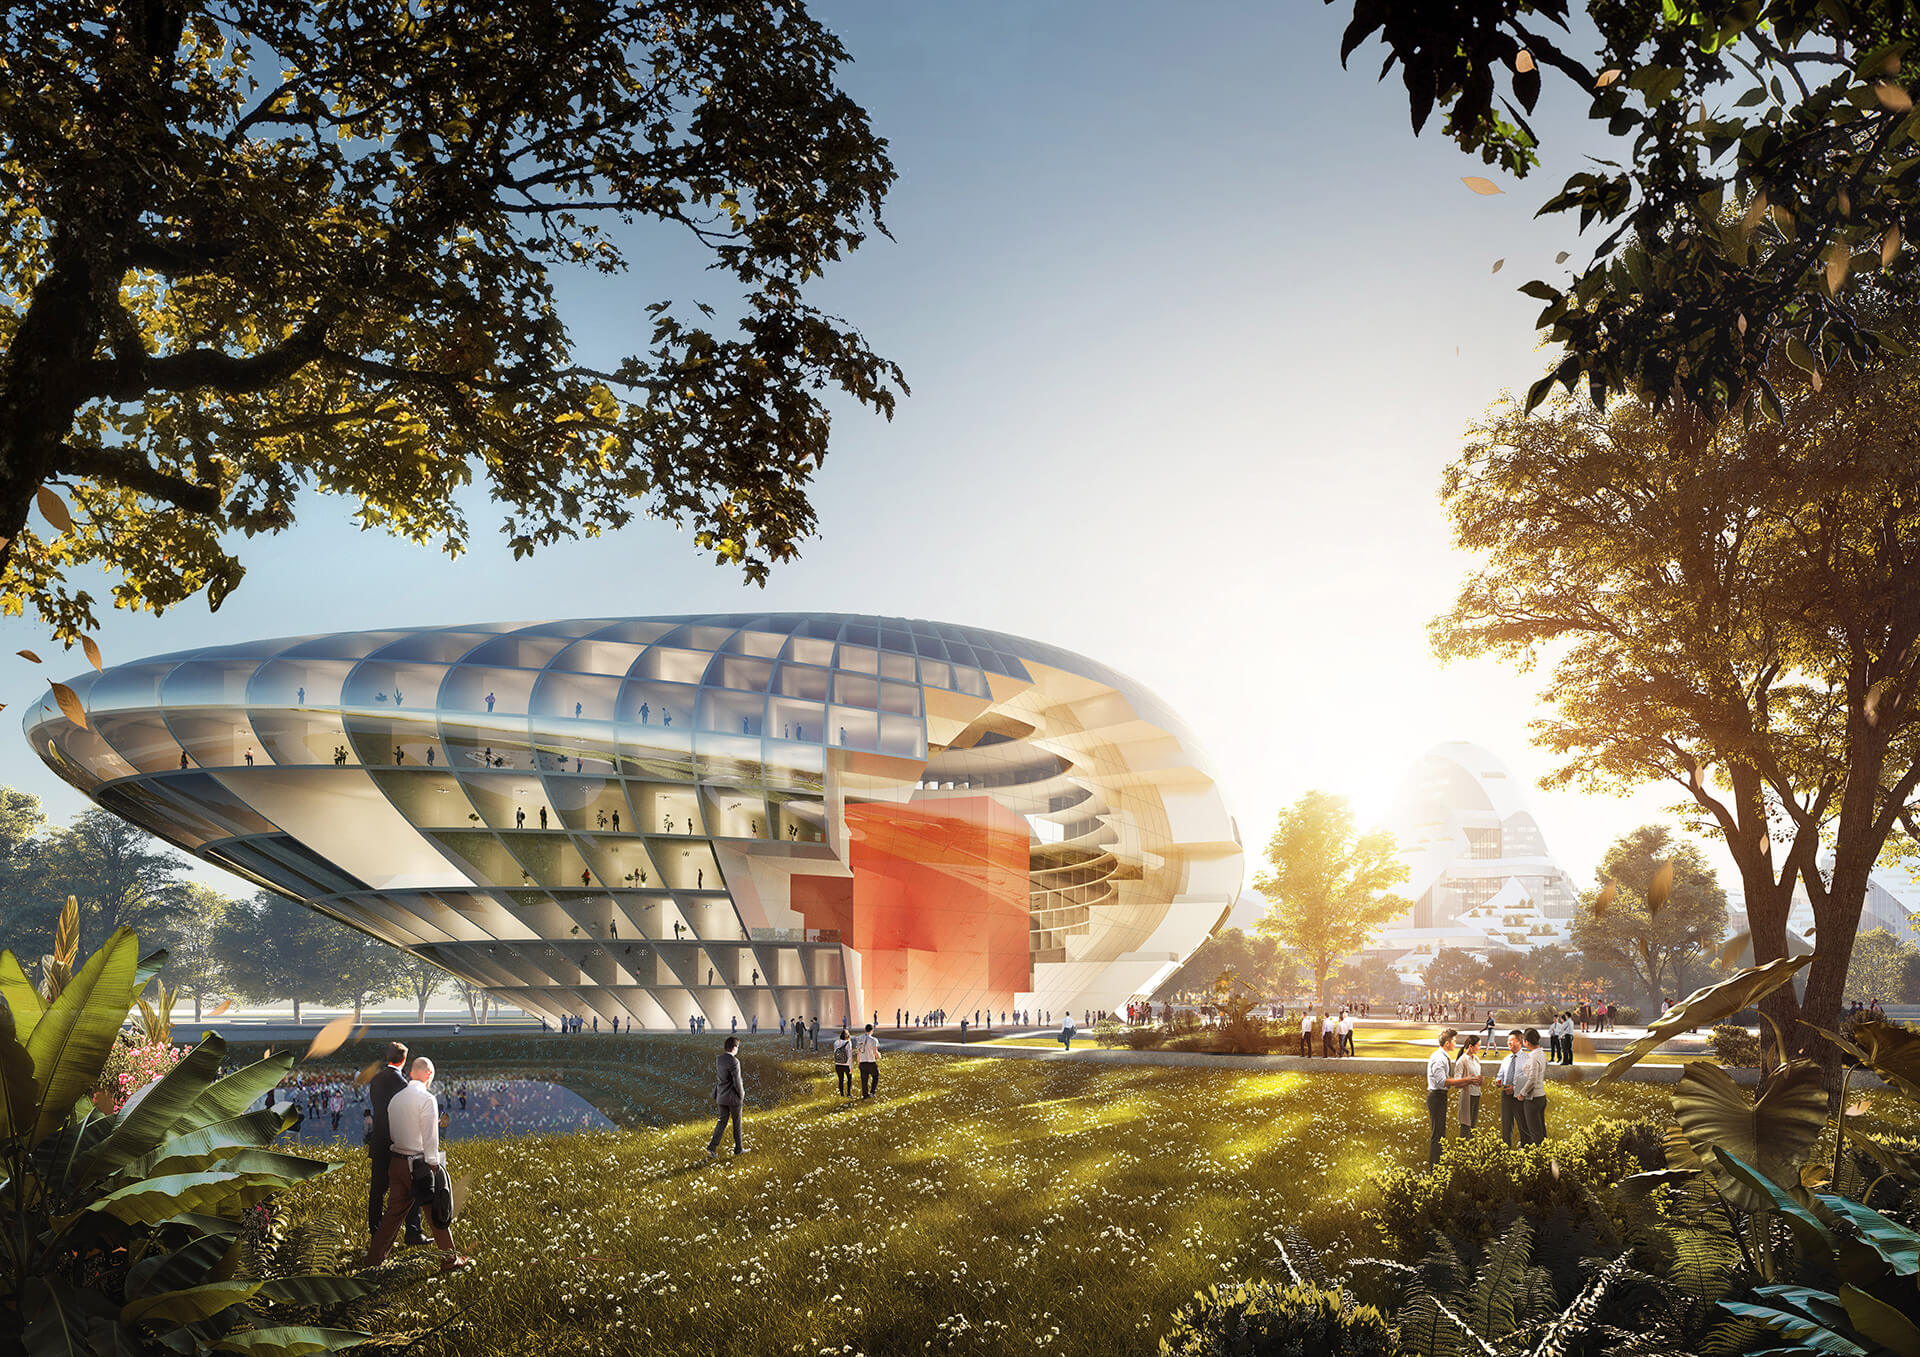 Conference centre at the southern end of the park sits like a rock at the foot of the hill  | New Tencent Headquarters Campus | MVRDV | STIRworld